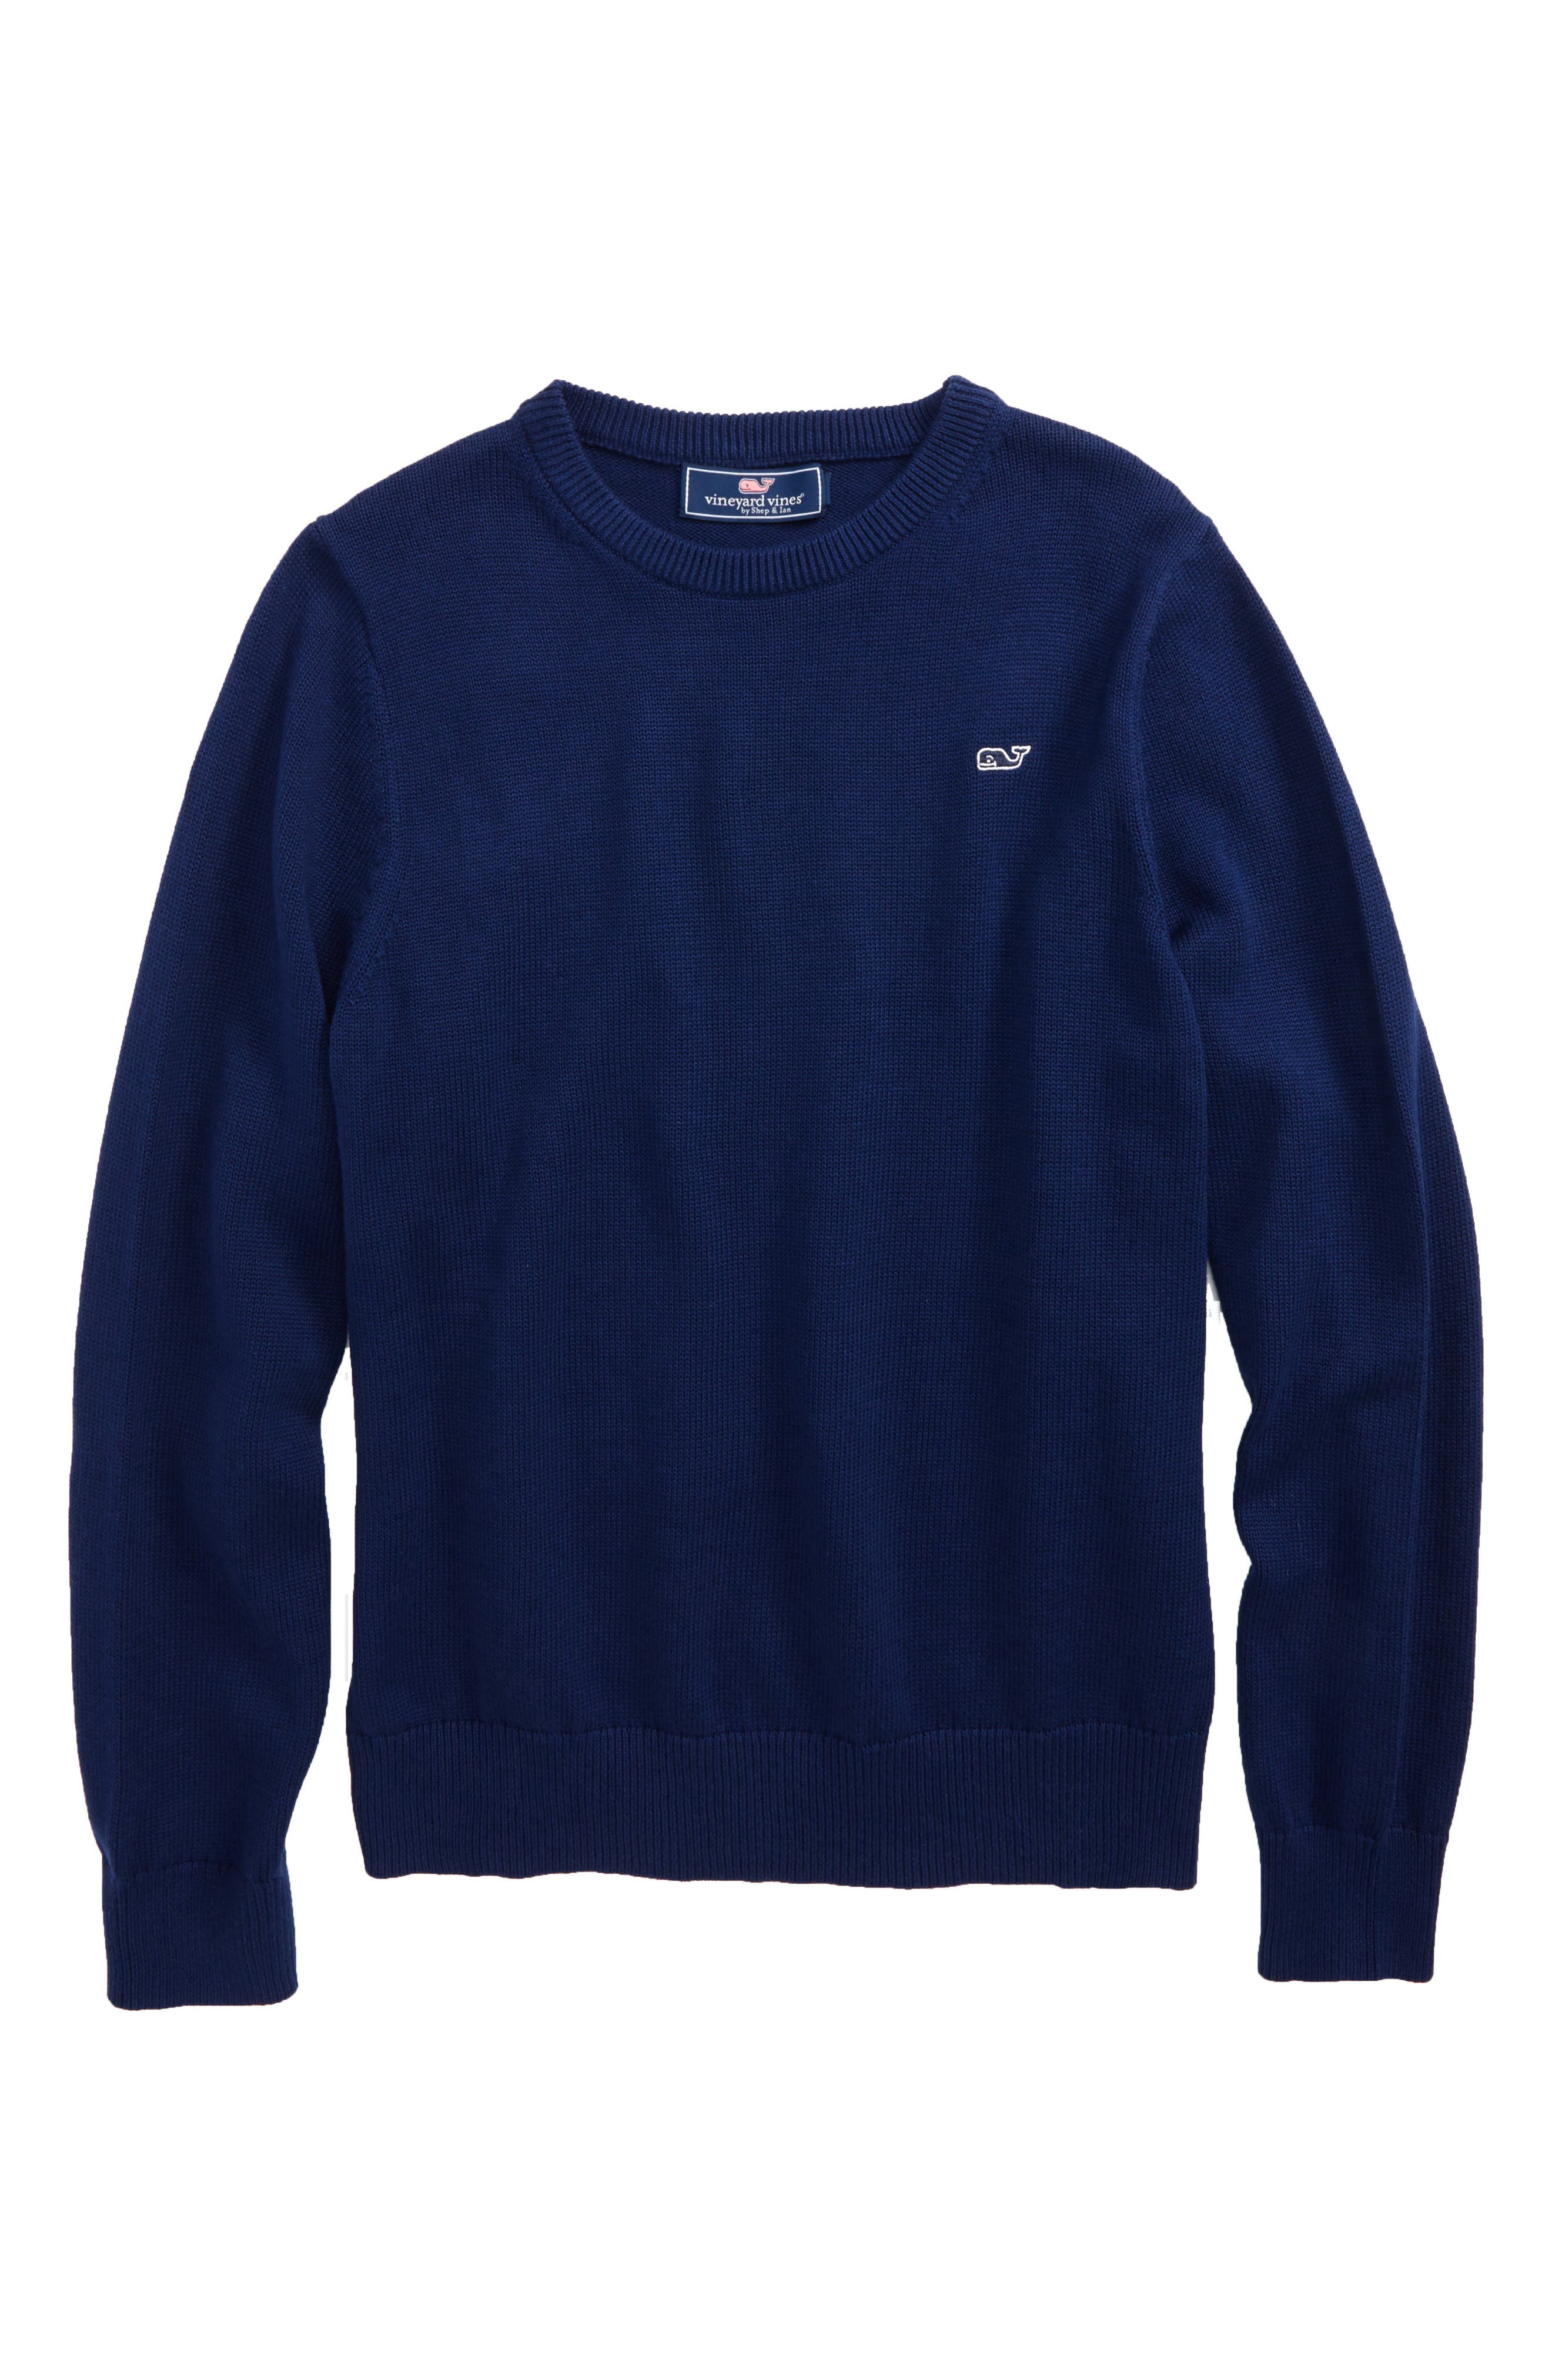 Alternate Image 1 Selected - vineyard vines Classic Crewneck Sweater (Big Boys)